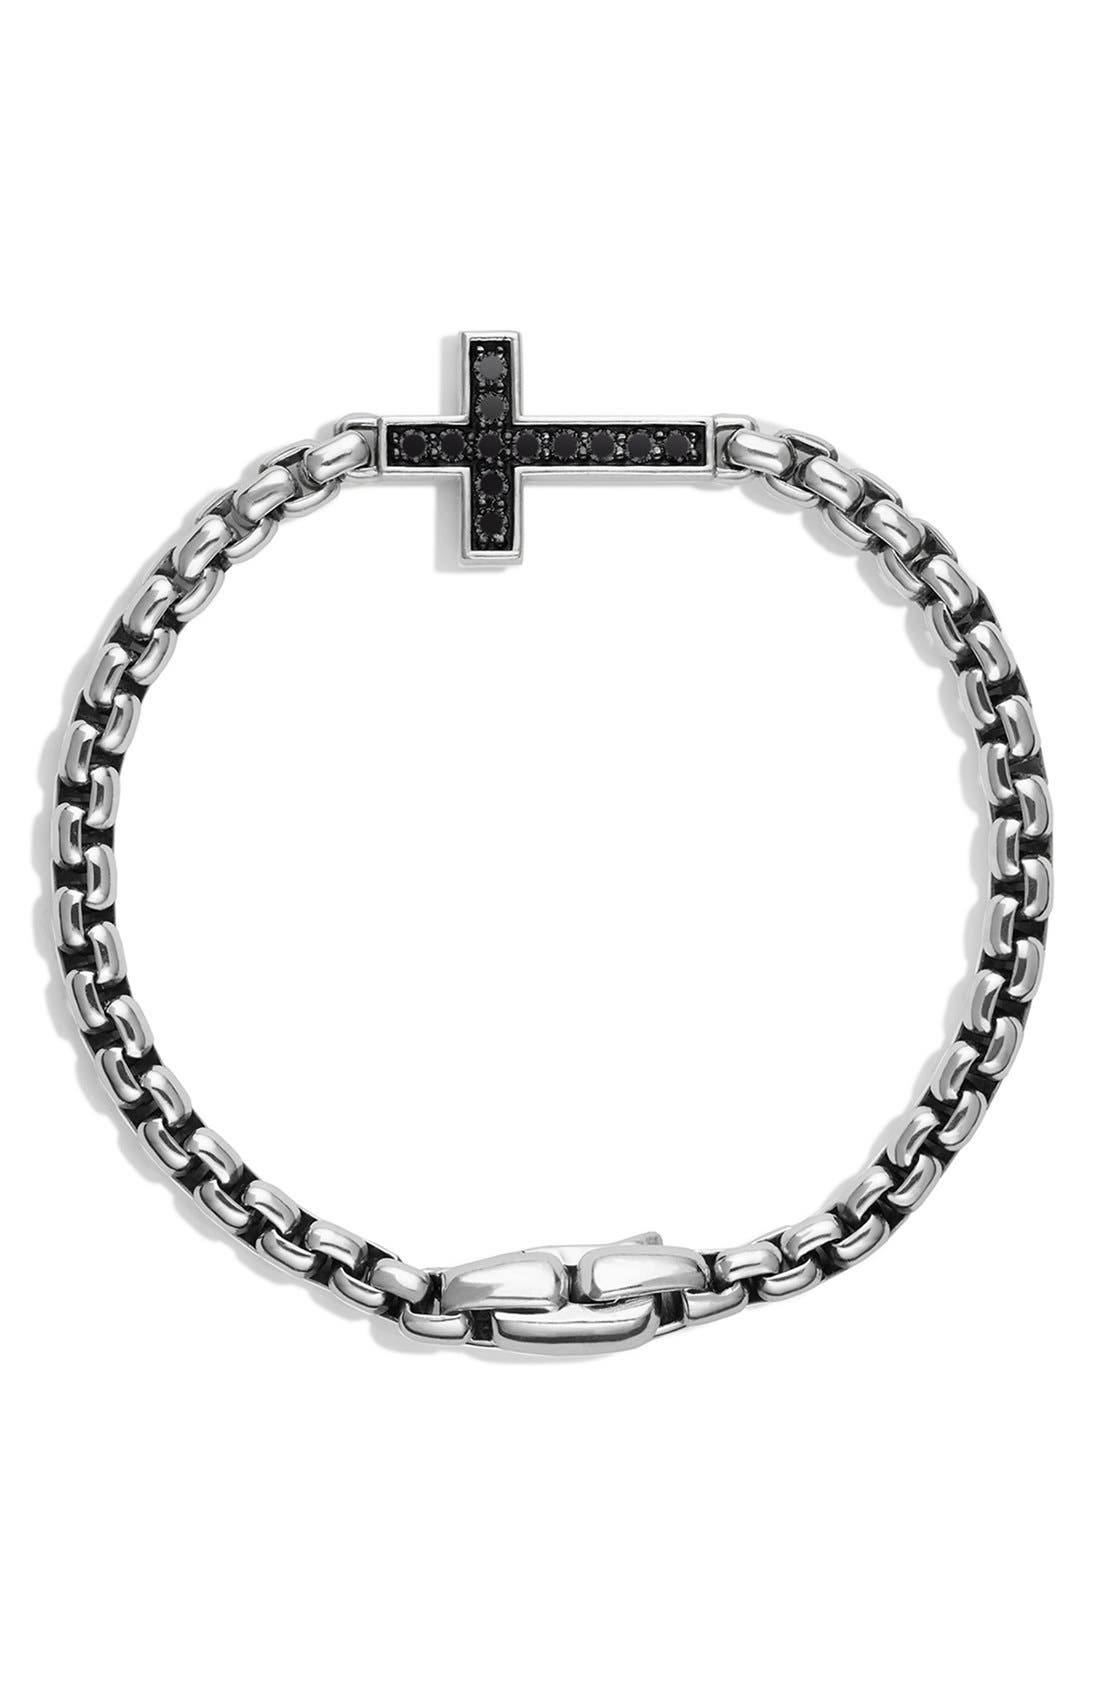 DAVID YURMAN Pavé Black Diamond Cross Station Bracelet